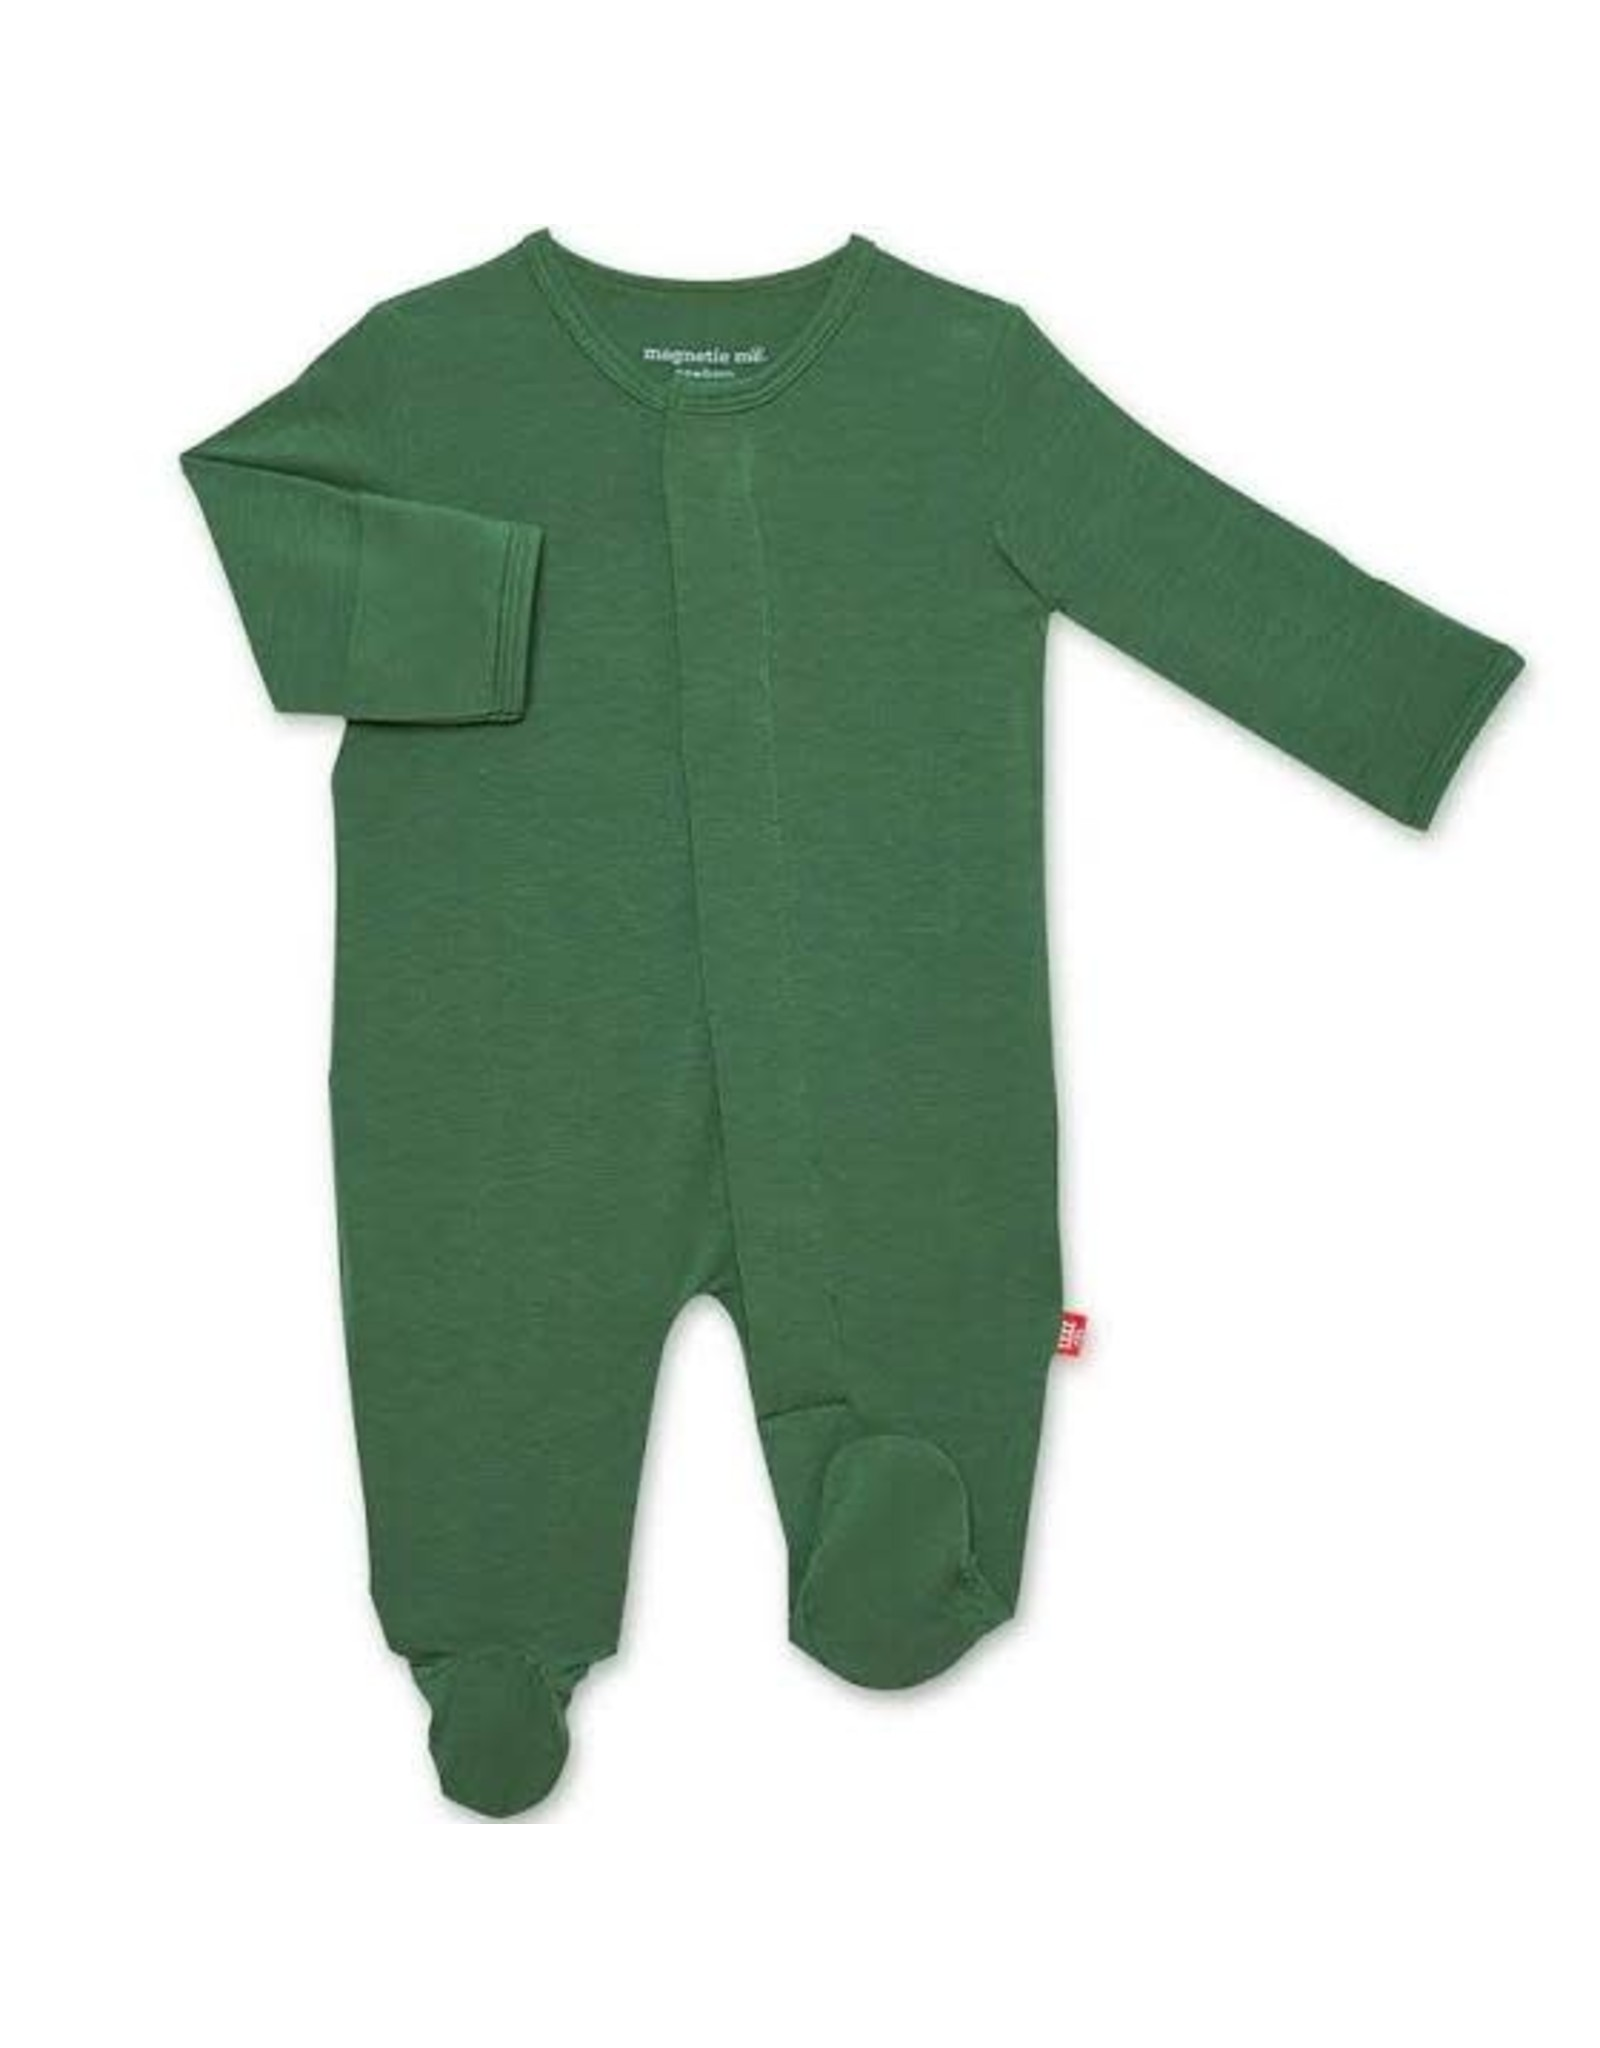 Magnetic Me Magnetic Me- Emerald Solid Modal Magnetic Footie